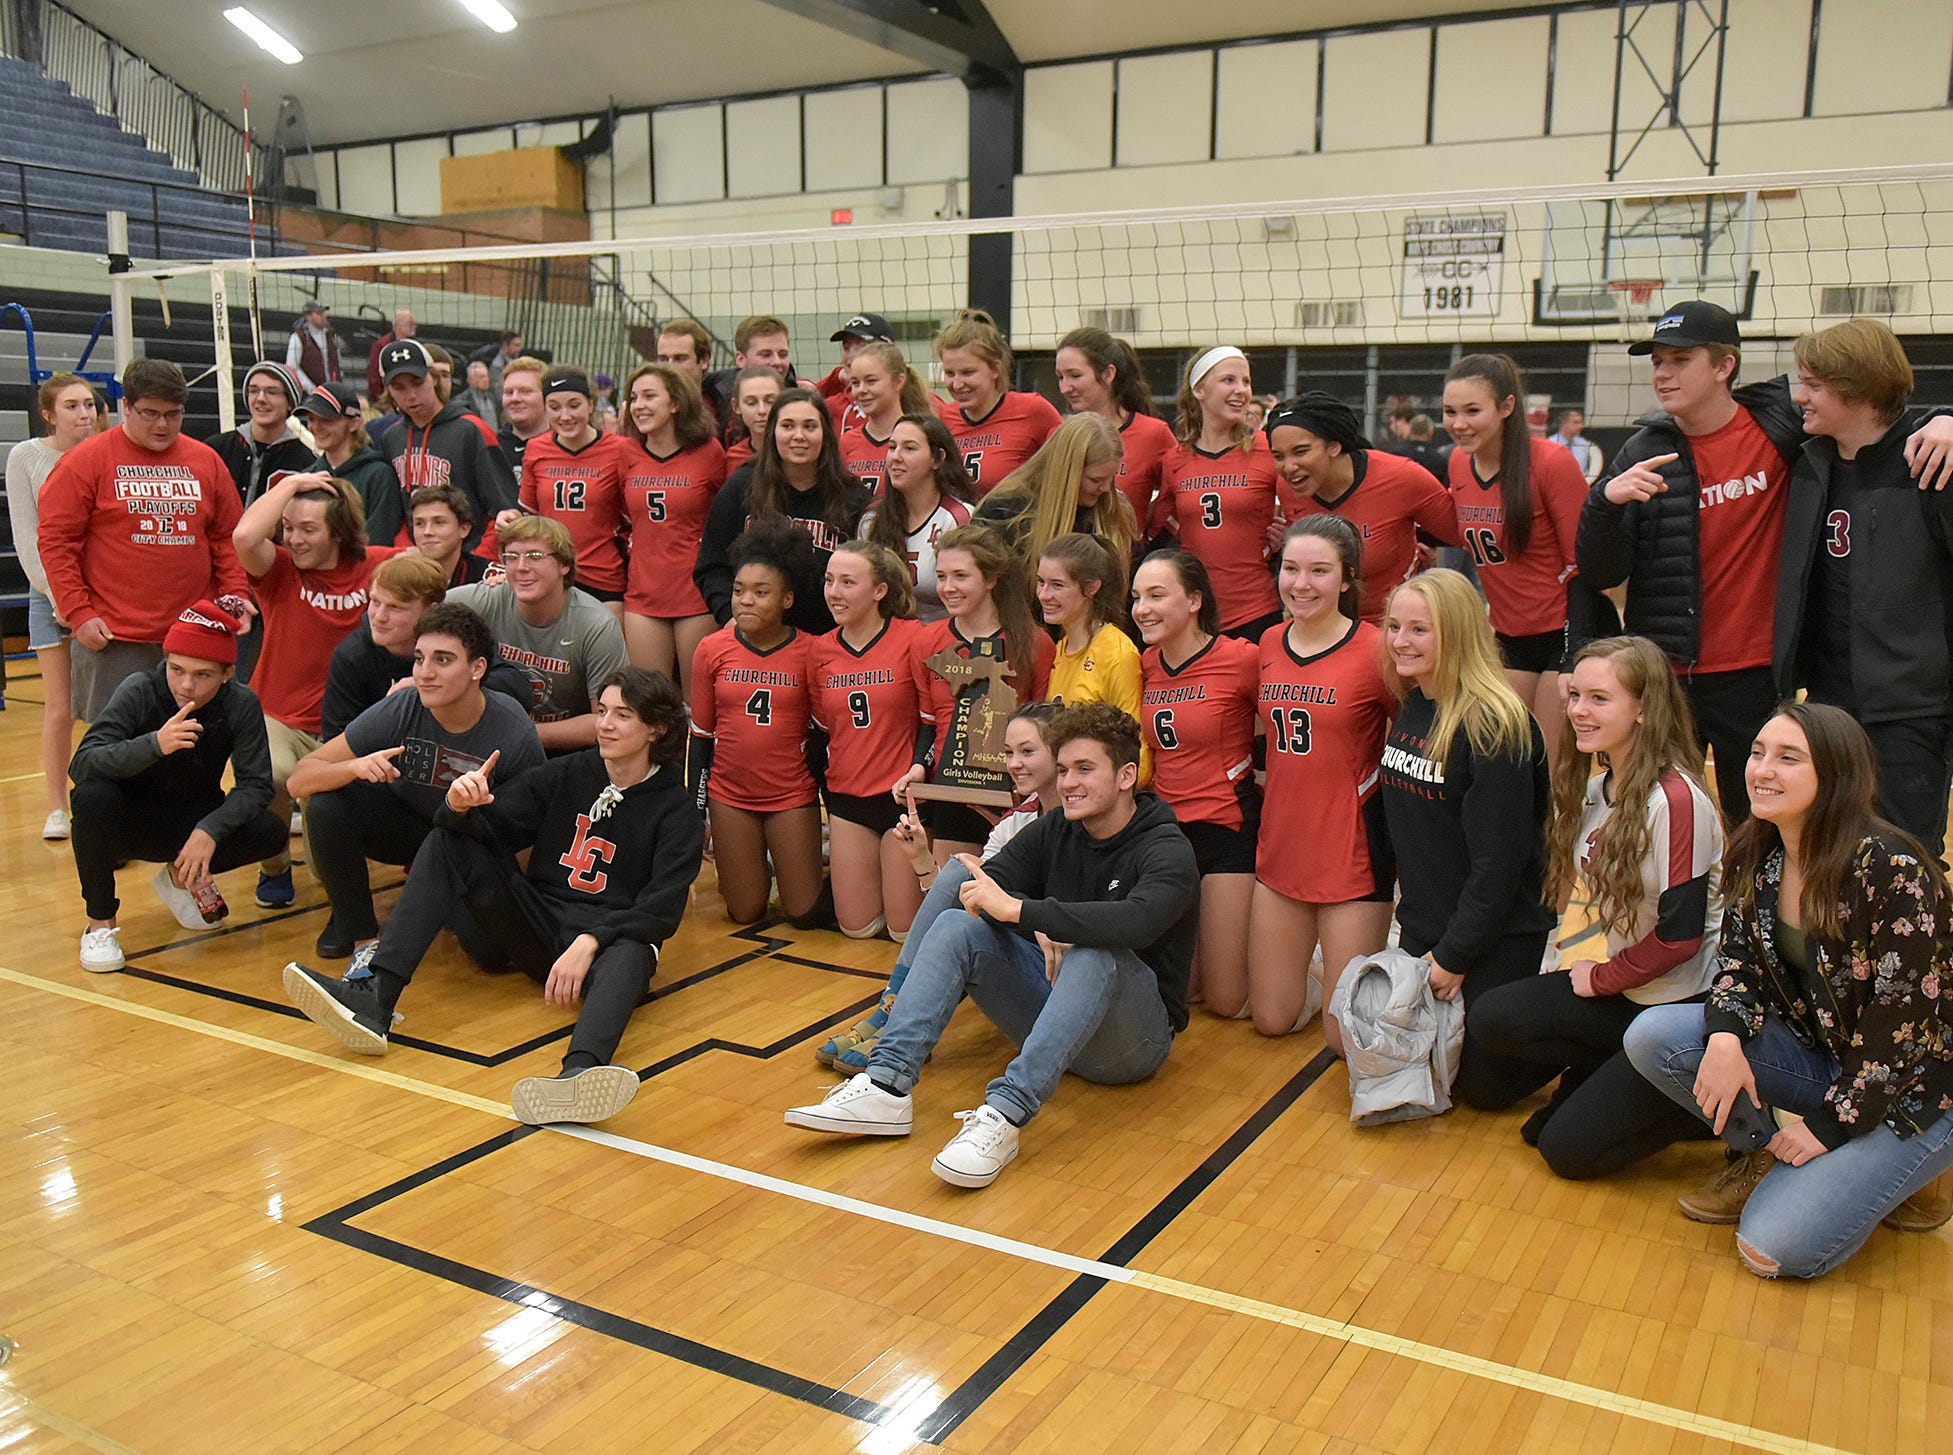 Livonia Churchill volleyball and fans.